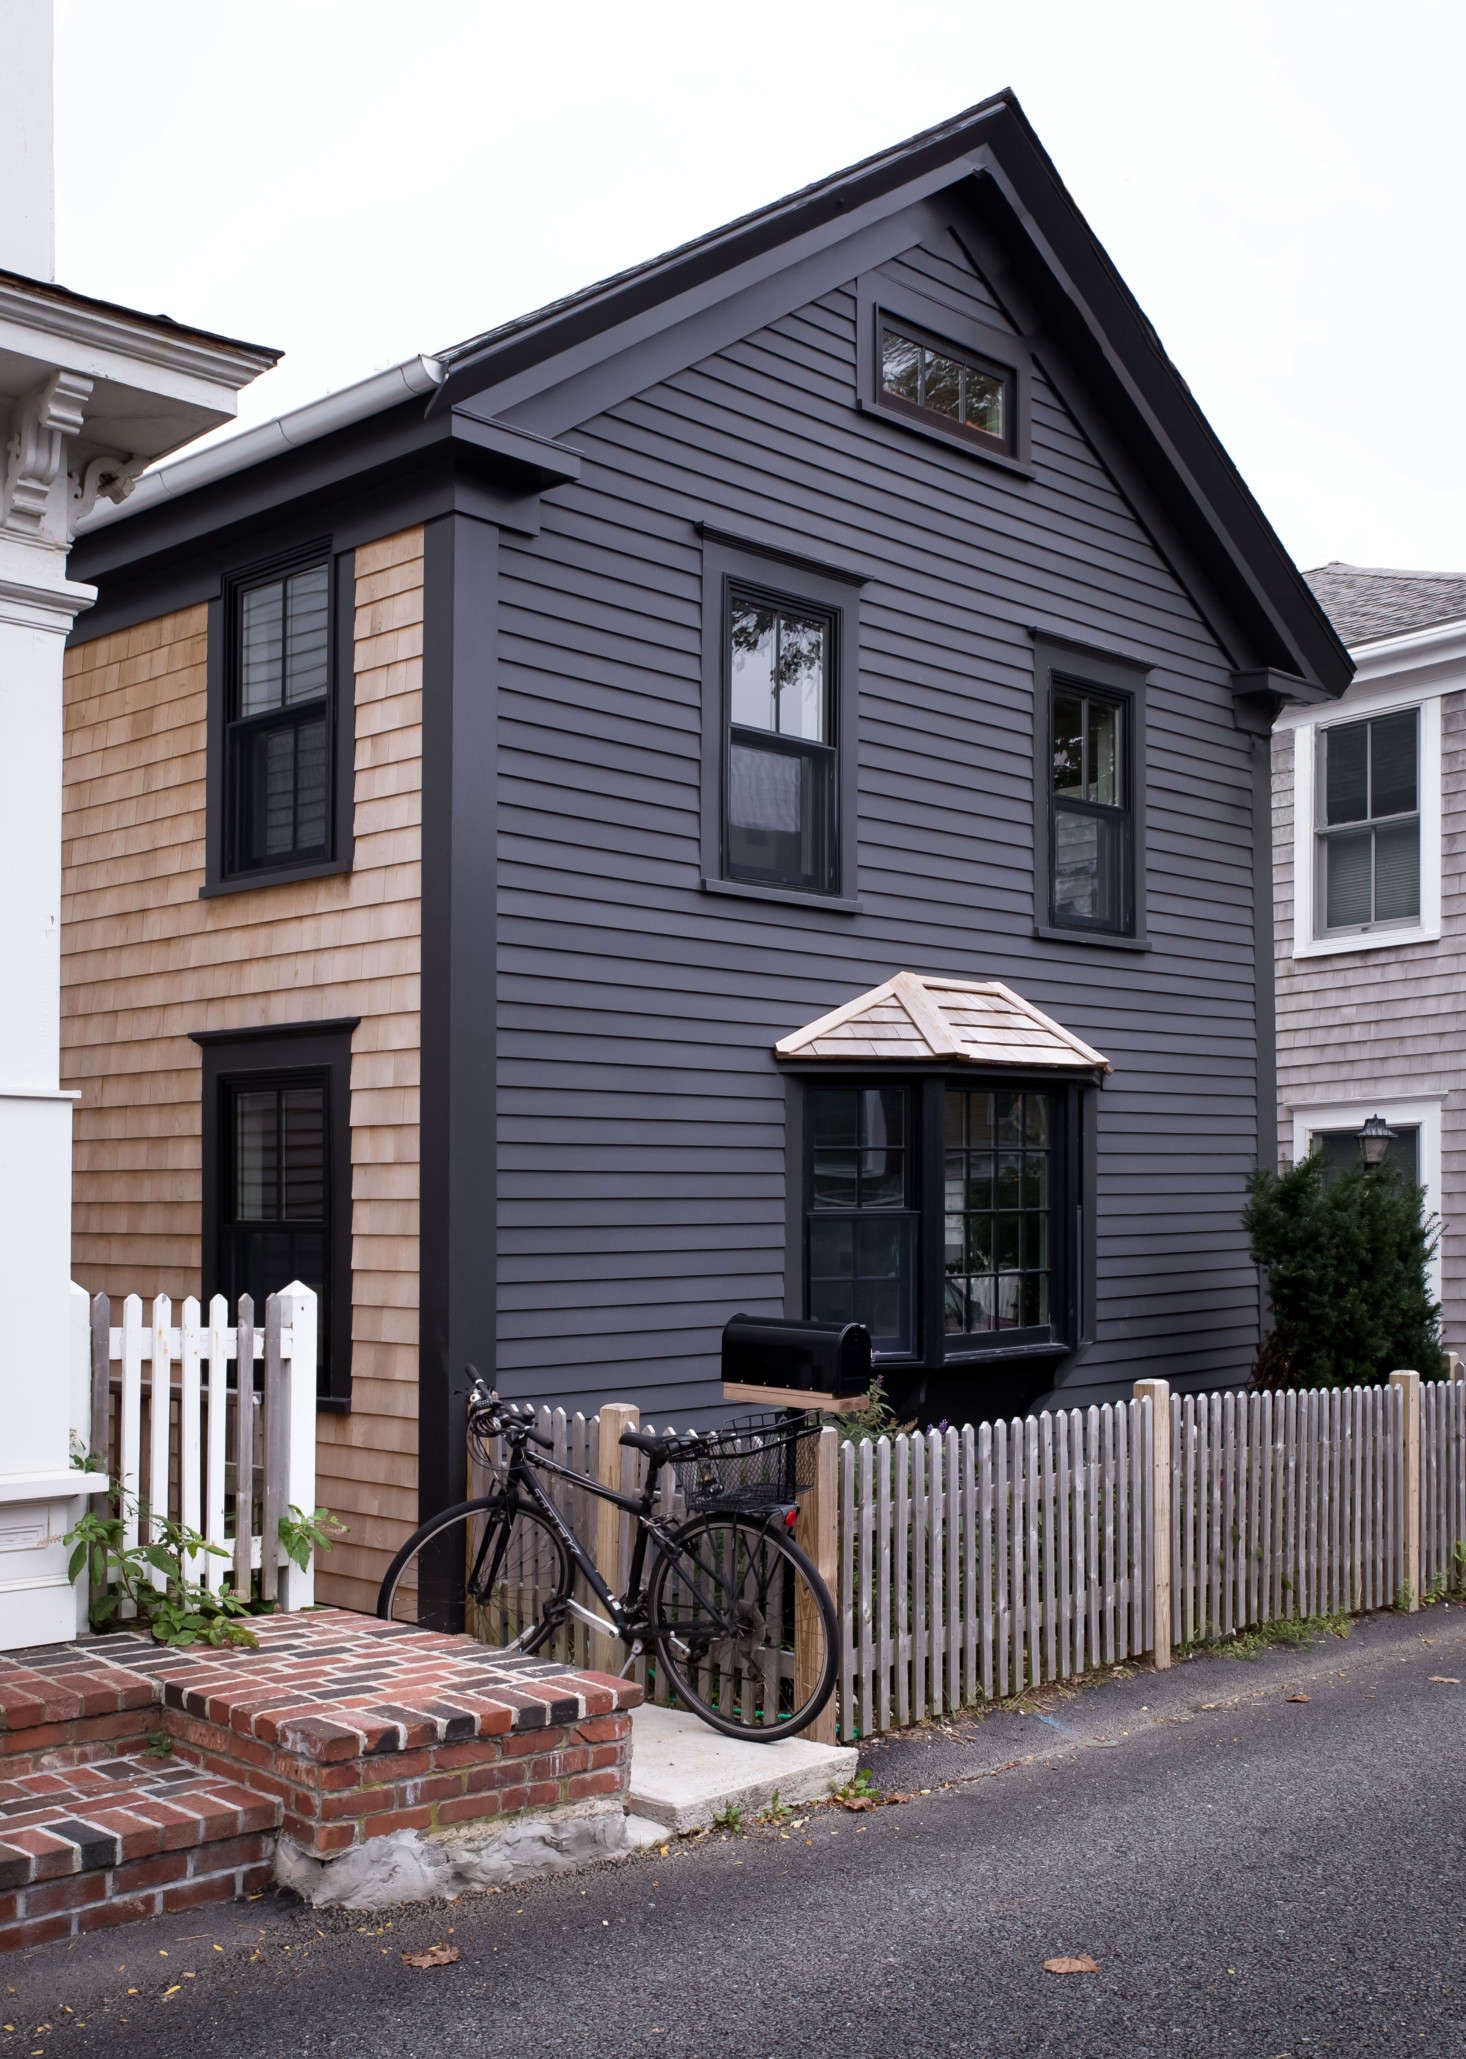 The exterior features traditional shingle and clapboard siding updated with a more modern noir hue: Benjamin Moore&#8